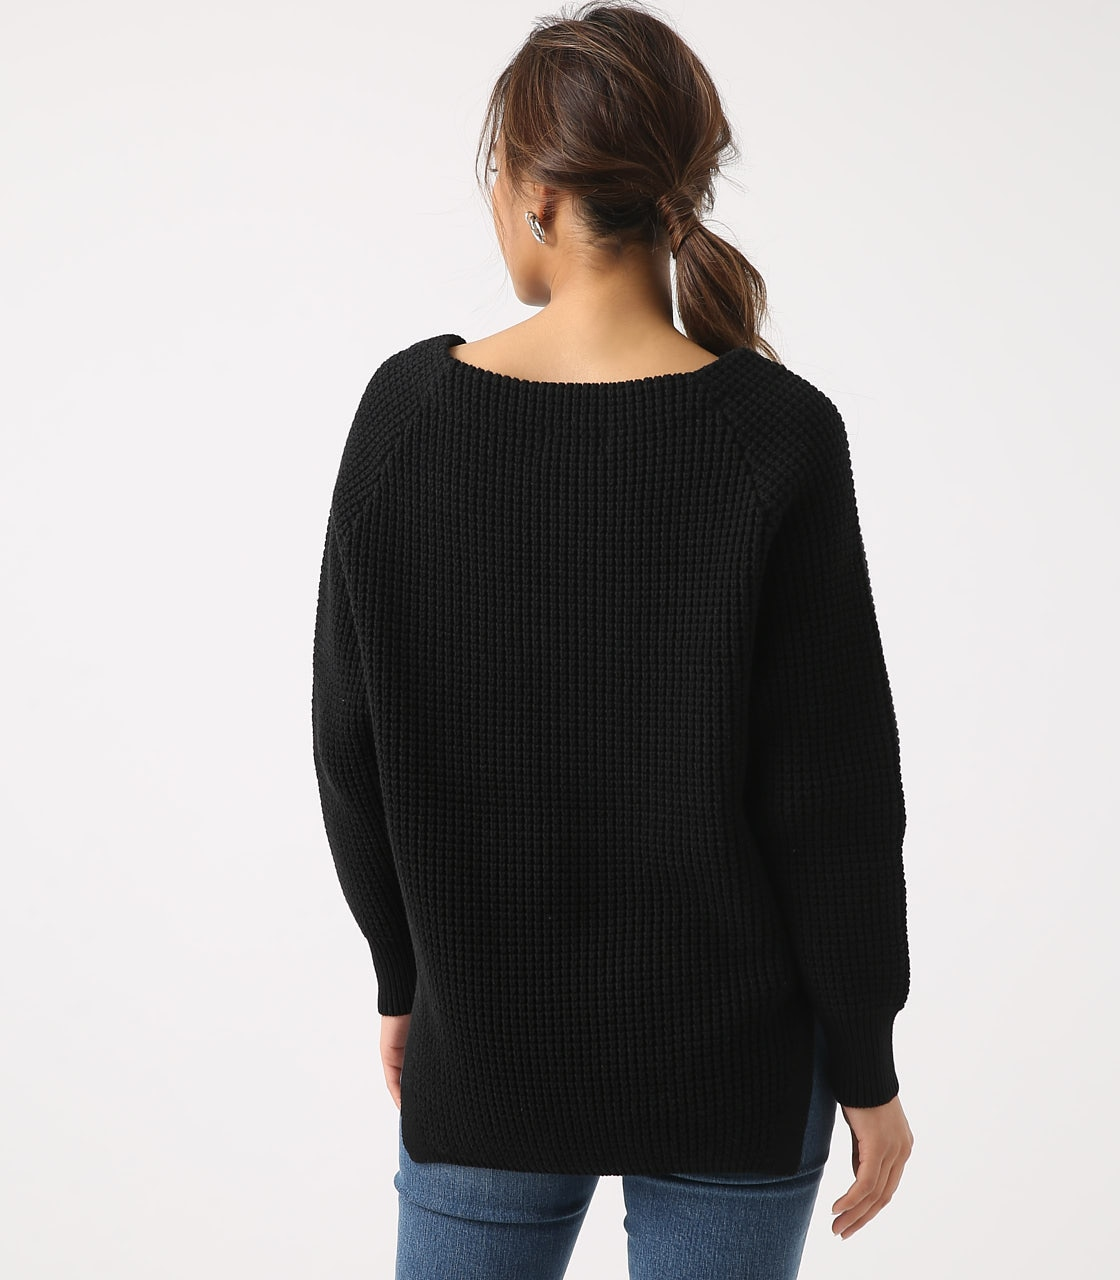 【AZUL BY MOUSSY】WAFFLE KNIT TUNIC 詳細画像 BLK 7